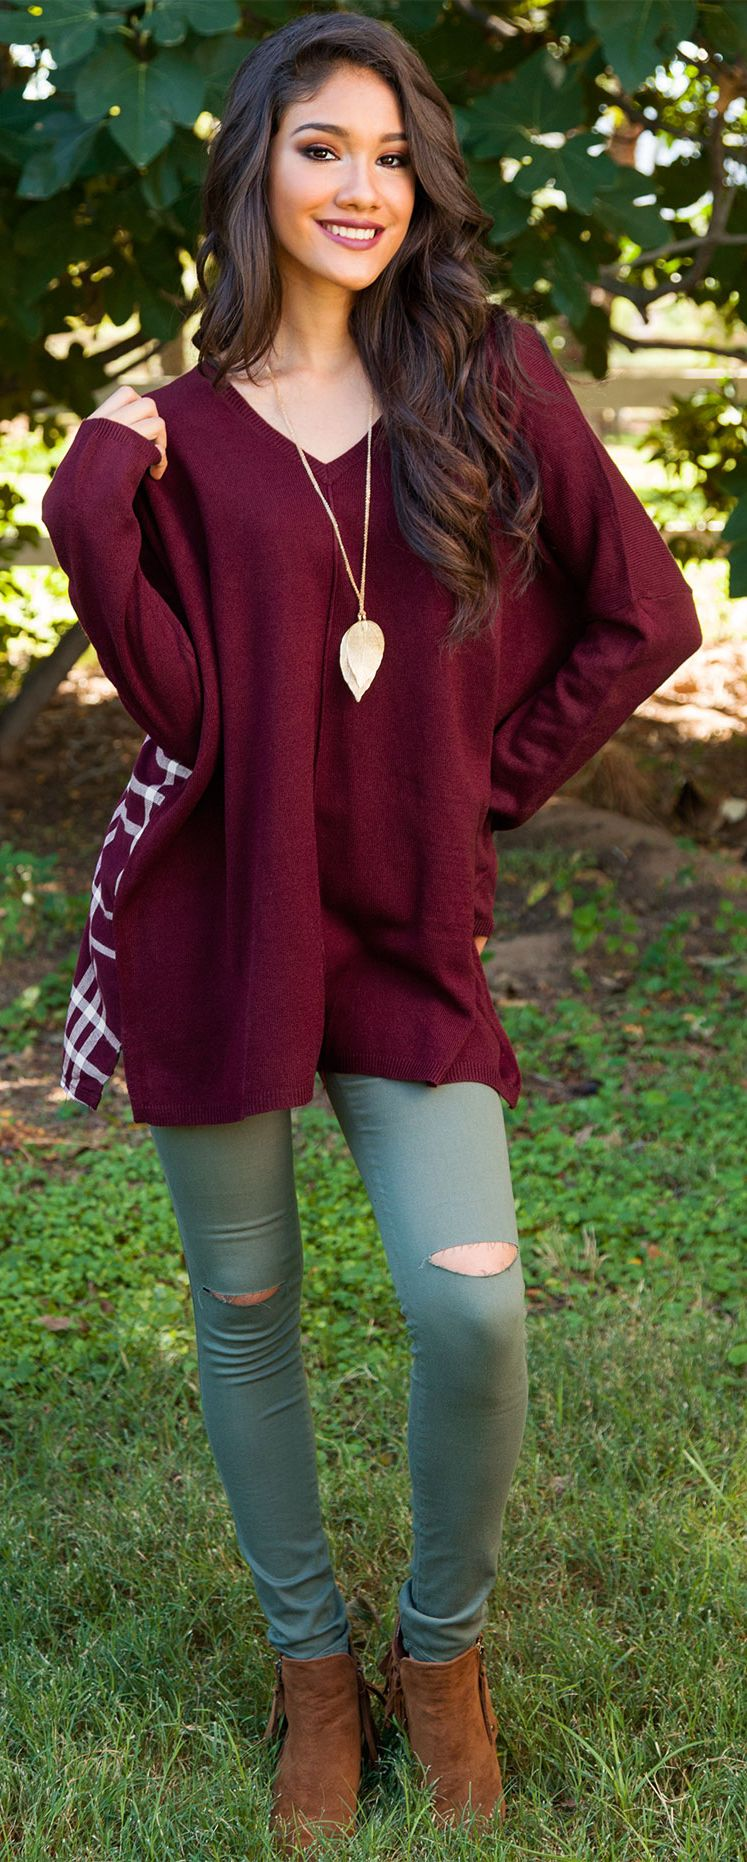 Maxine Oversized Plaid Sweater - Burgundy | [Fall] Fashion ...